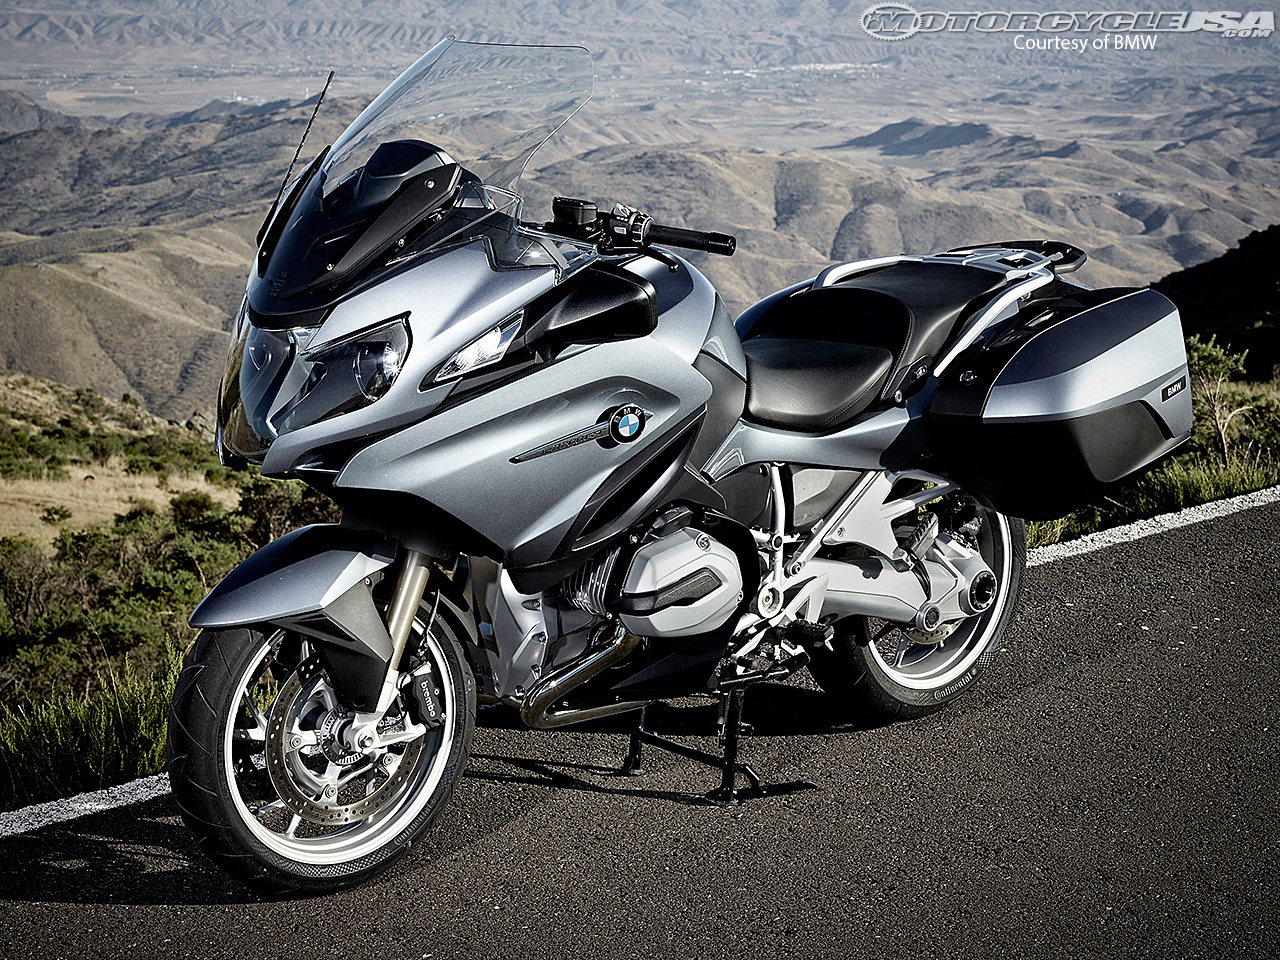 BMW R1200RT images #9056